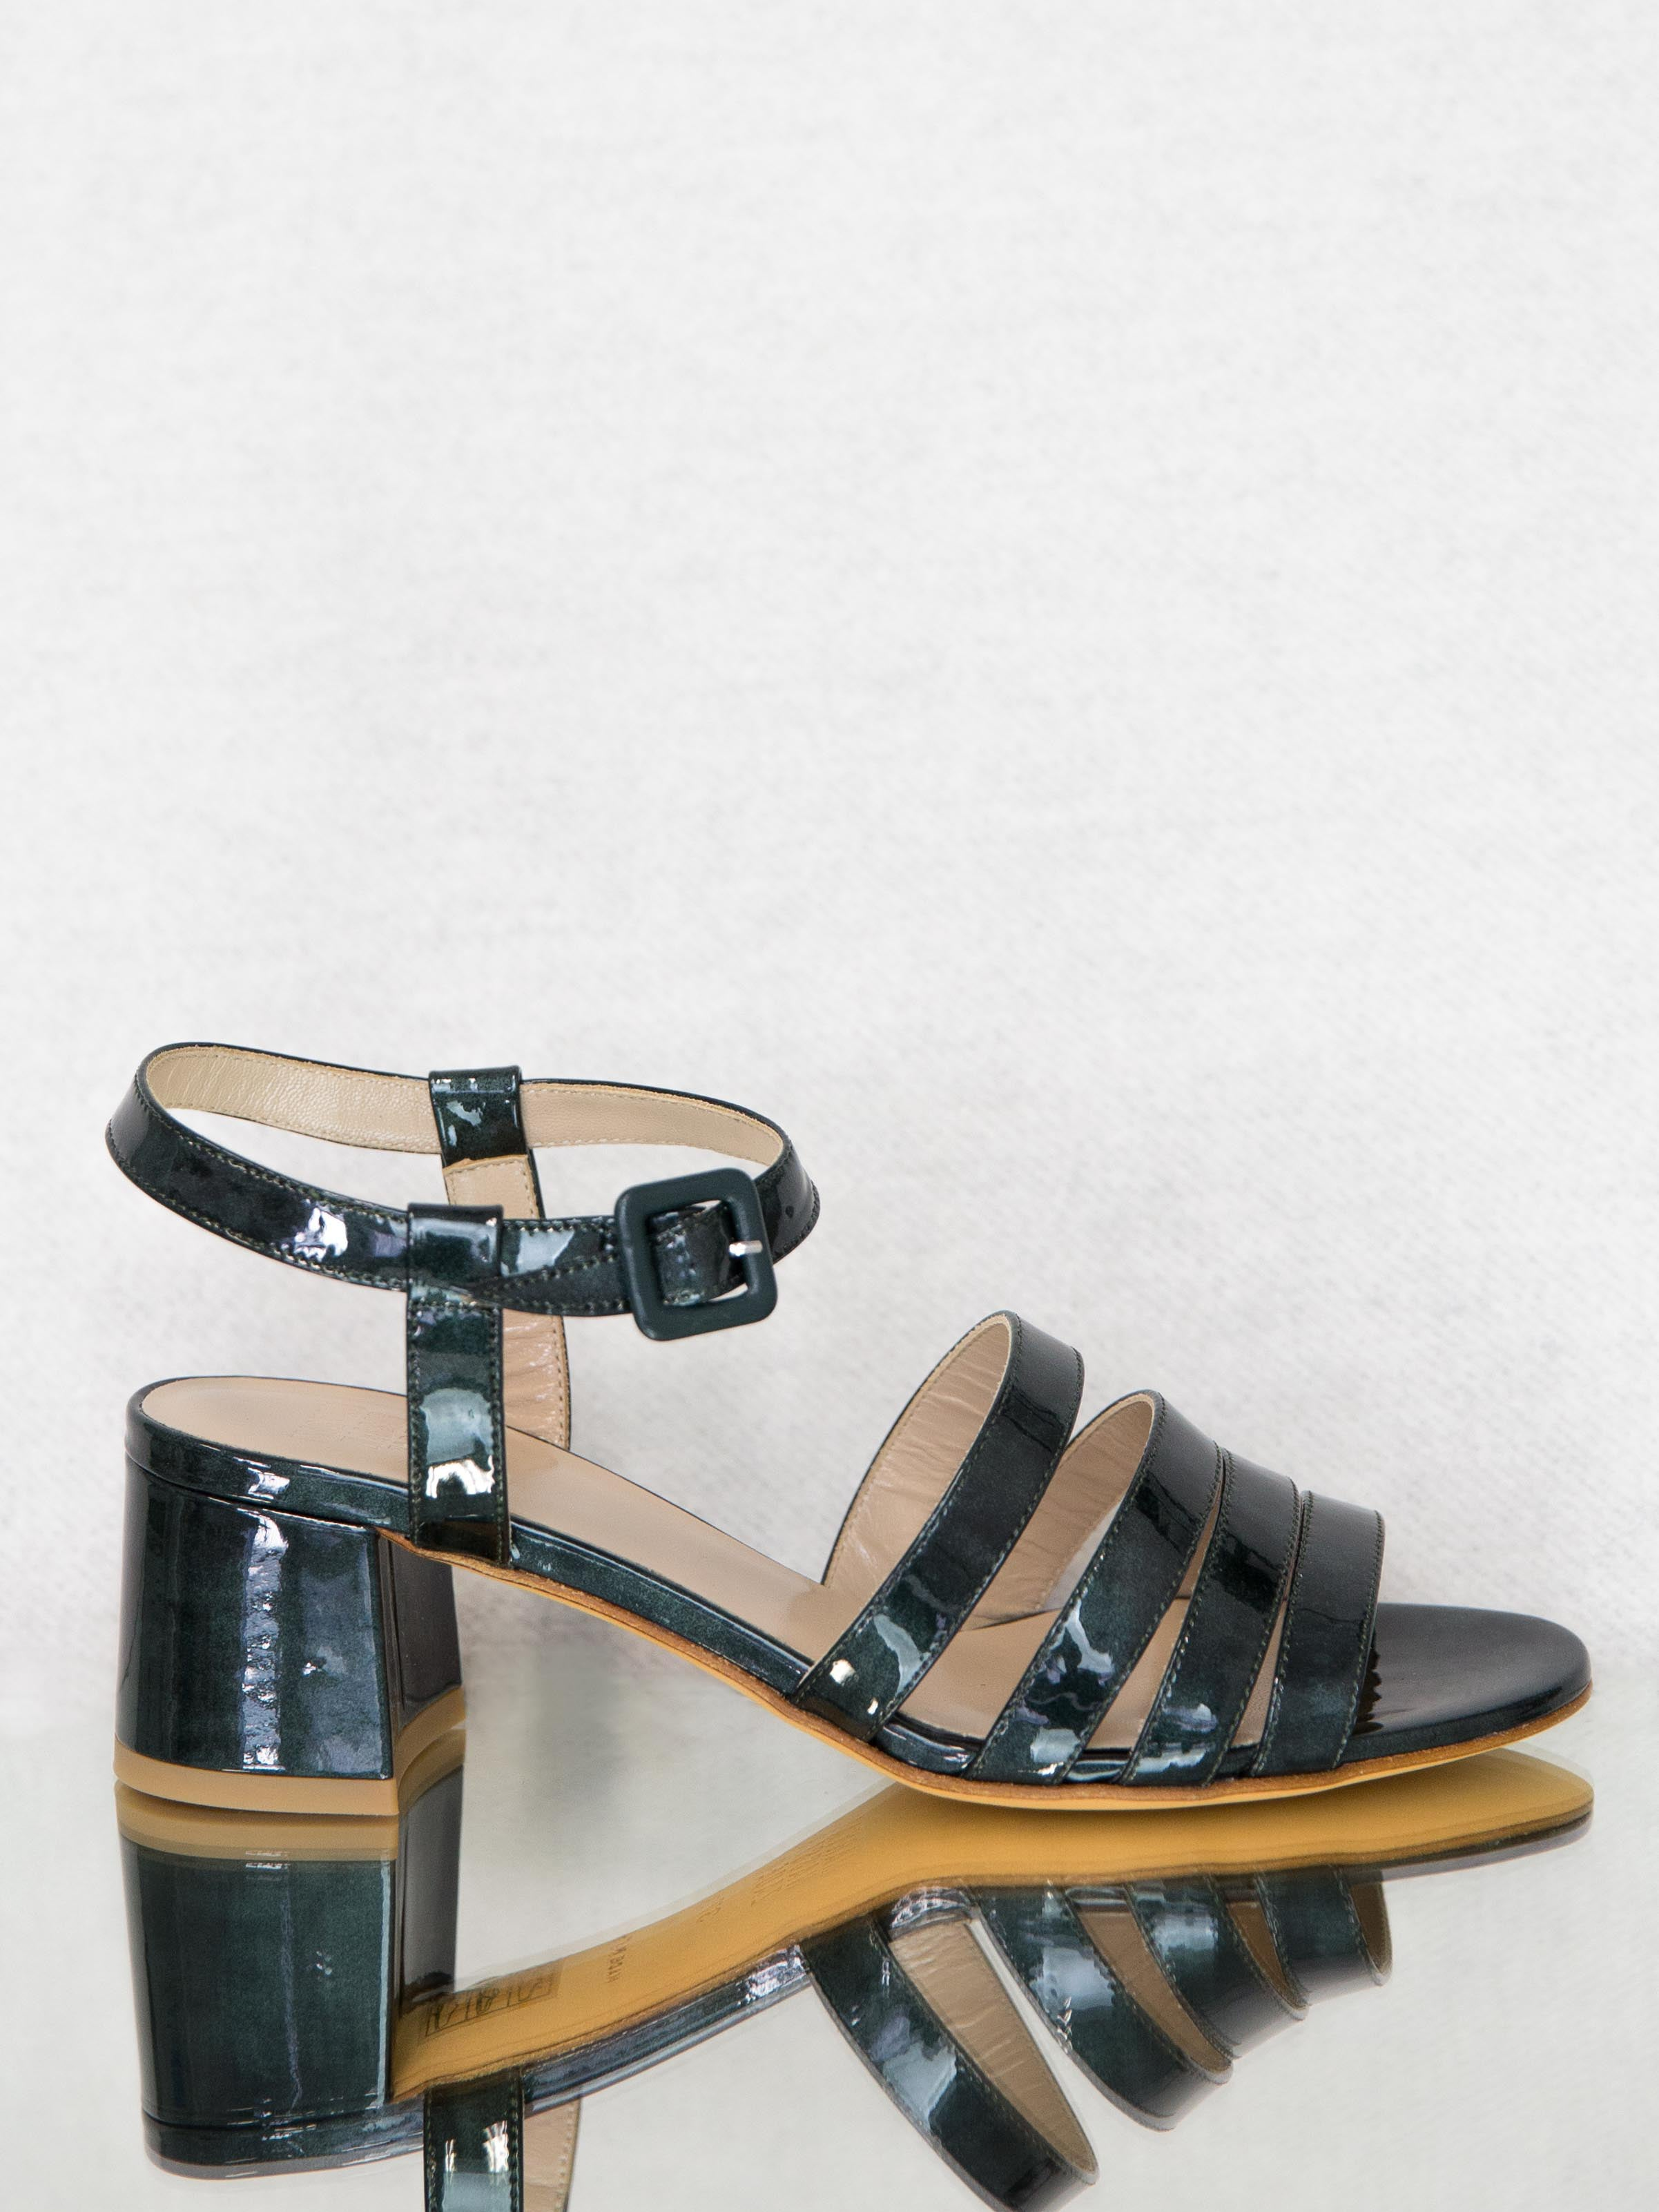 MARYAM NASSIR ZADEH Palma Low Sandal - Dark Emerald